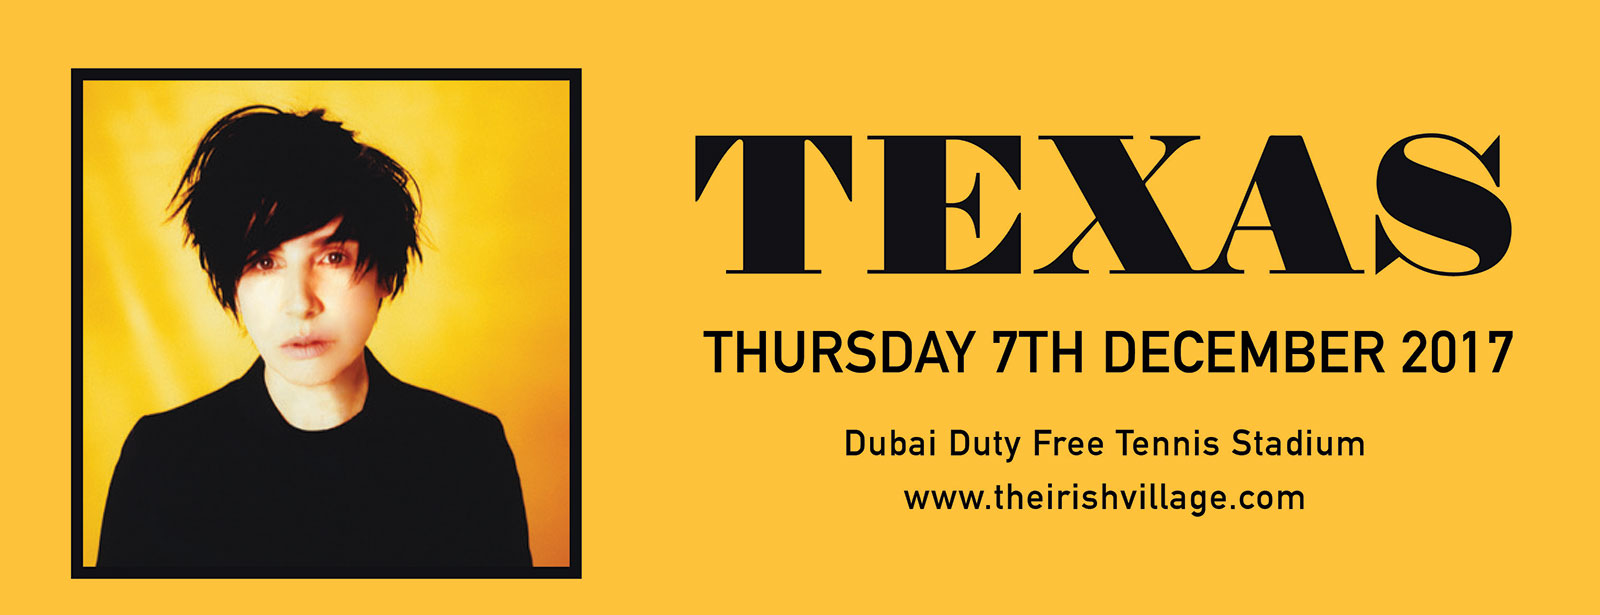 The Irish Village presents Texas Live in Dubai